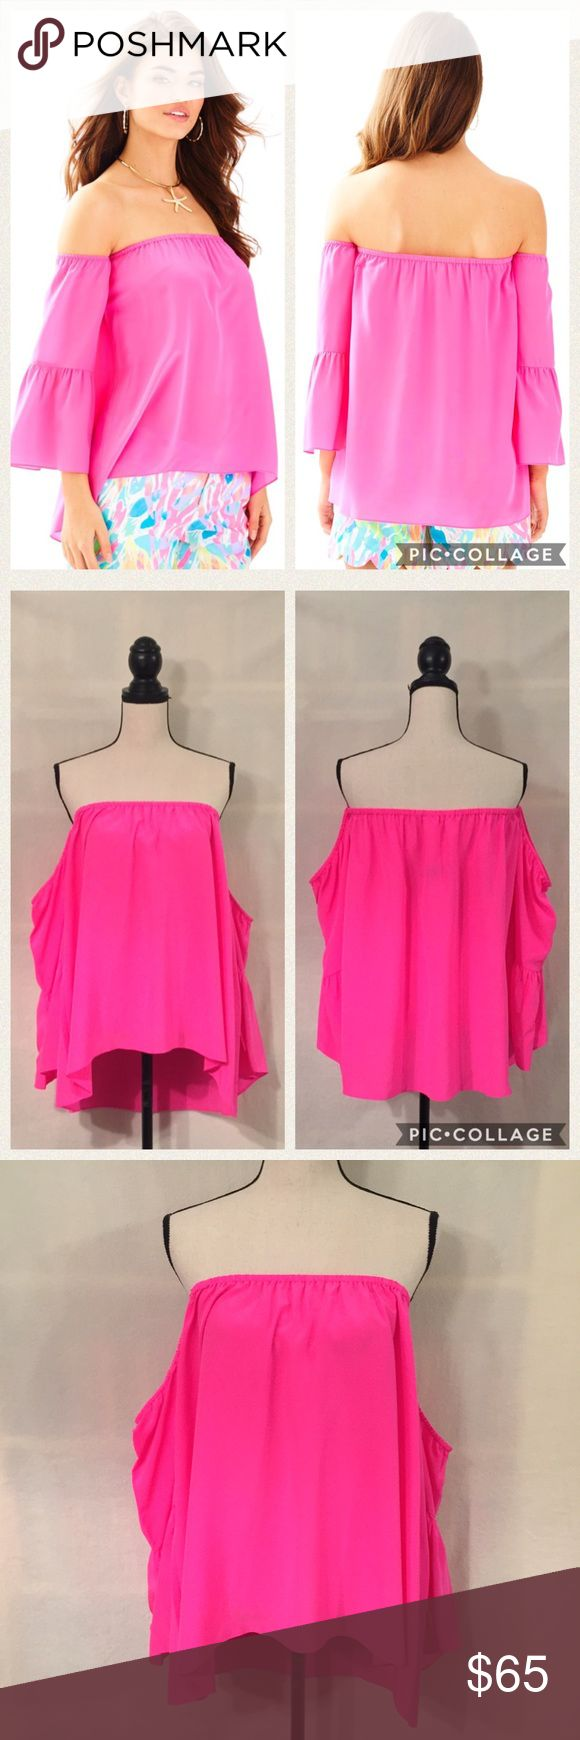 """NWT Lilly Pulitzer hot pink Sanilla 100% silk top NWT. Lilly Pulitzer 'Sanilla' off the shoulder top in pink fusion. A bright neon hot pink! Color most accurate in photo 8. Off the shoulder top with elasticized neckline. Long, peplum/bell sleeves. Sleeves are attached with rest of top at underarm. Unlined, you'll need a nude bandeau or strapless bra, as it's a tiny bit sheer. Tiny bit longer in the back. 100% silk. Measurements (flat): elastic neckline 16.5-24.5"""", waist 29.5"""" (flowy), length…"""